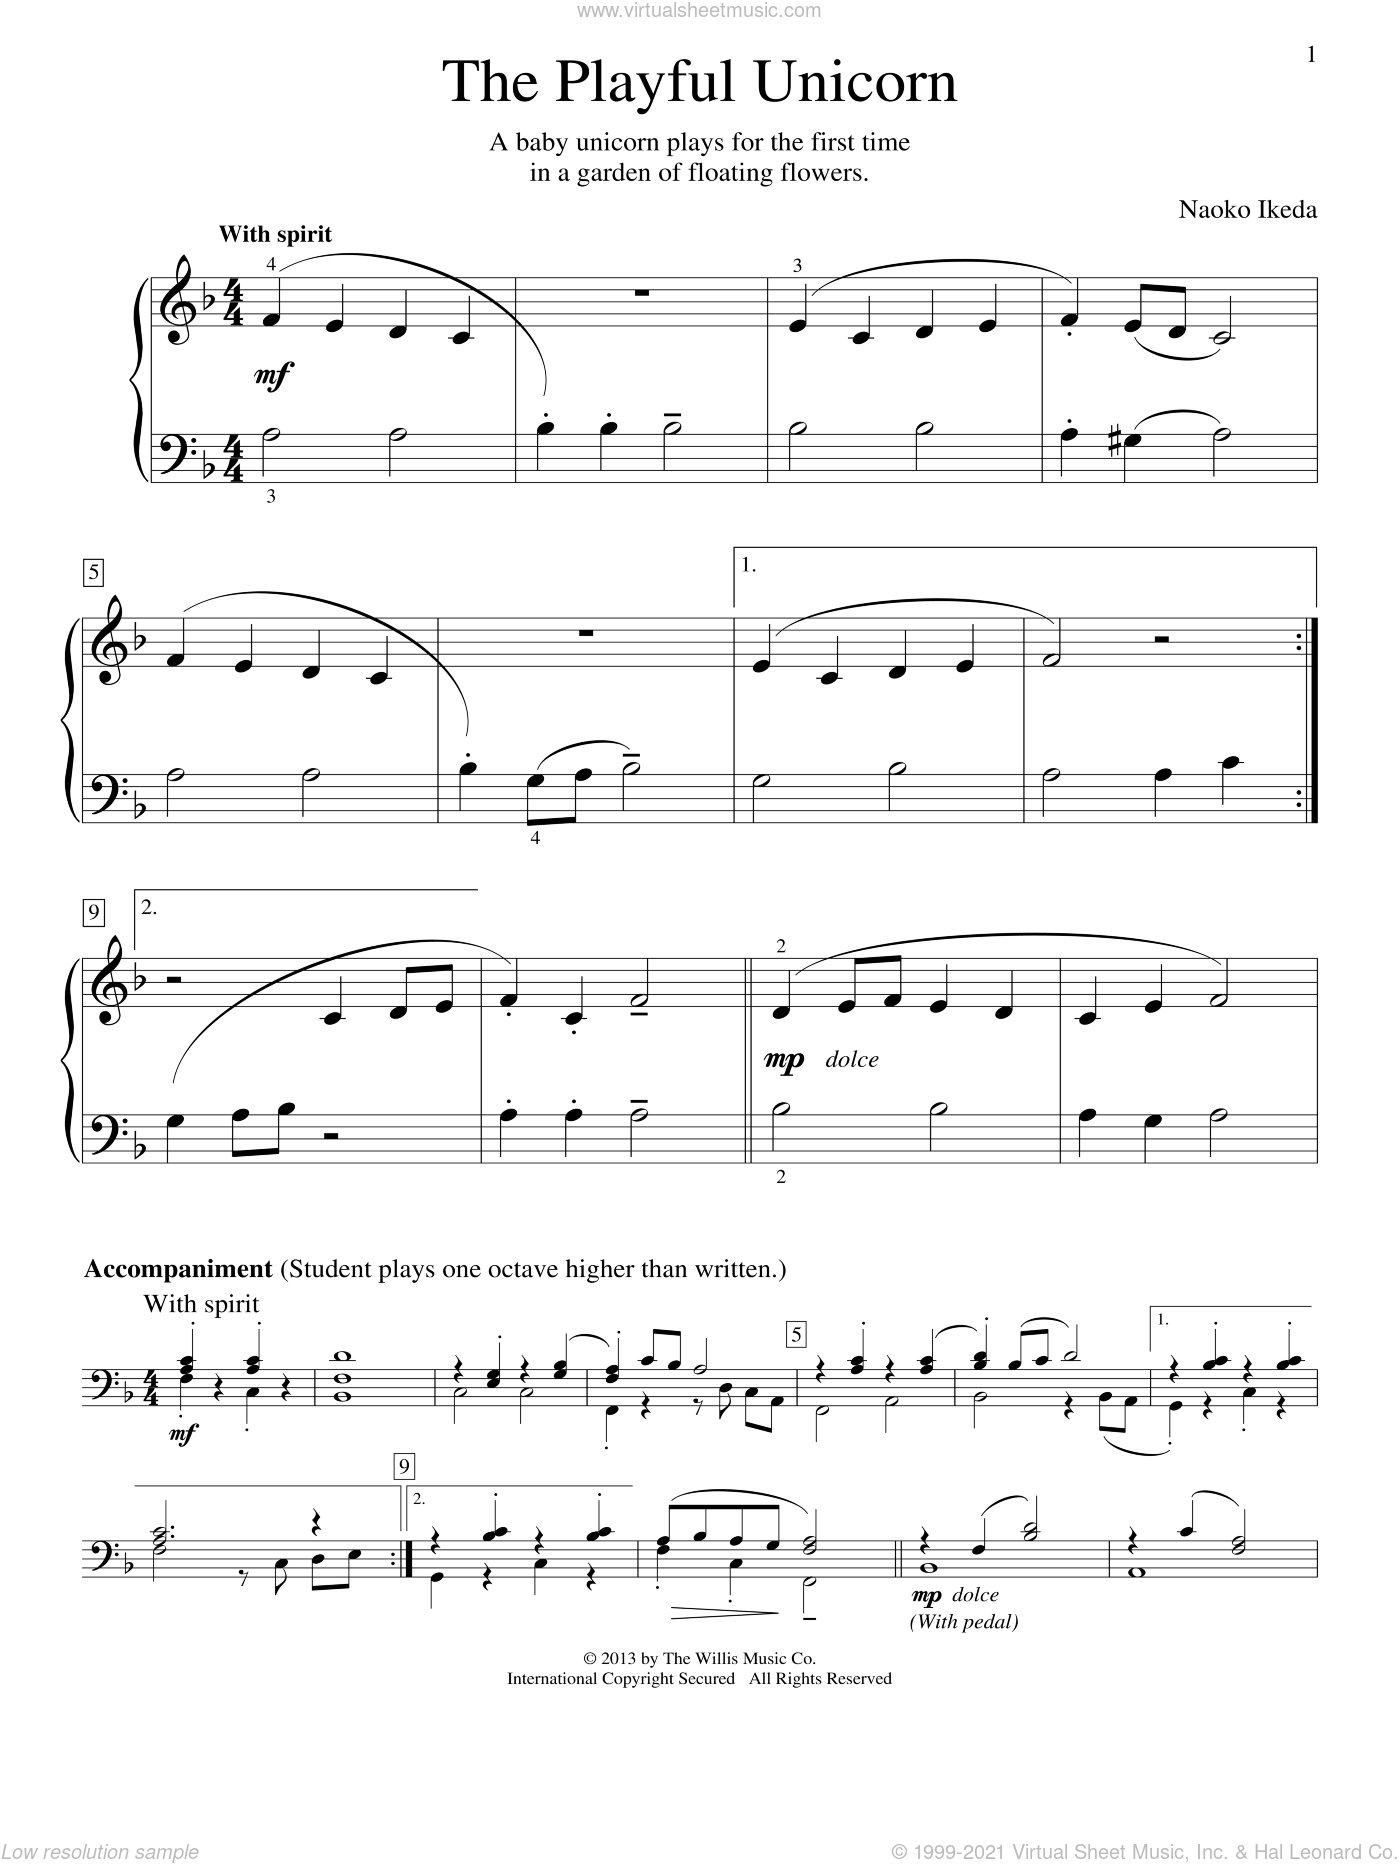 The Playful Unicorn sheet music for piano solo (elementary) by Naoko Ikeda